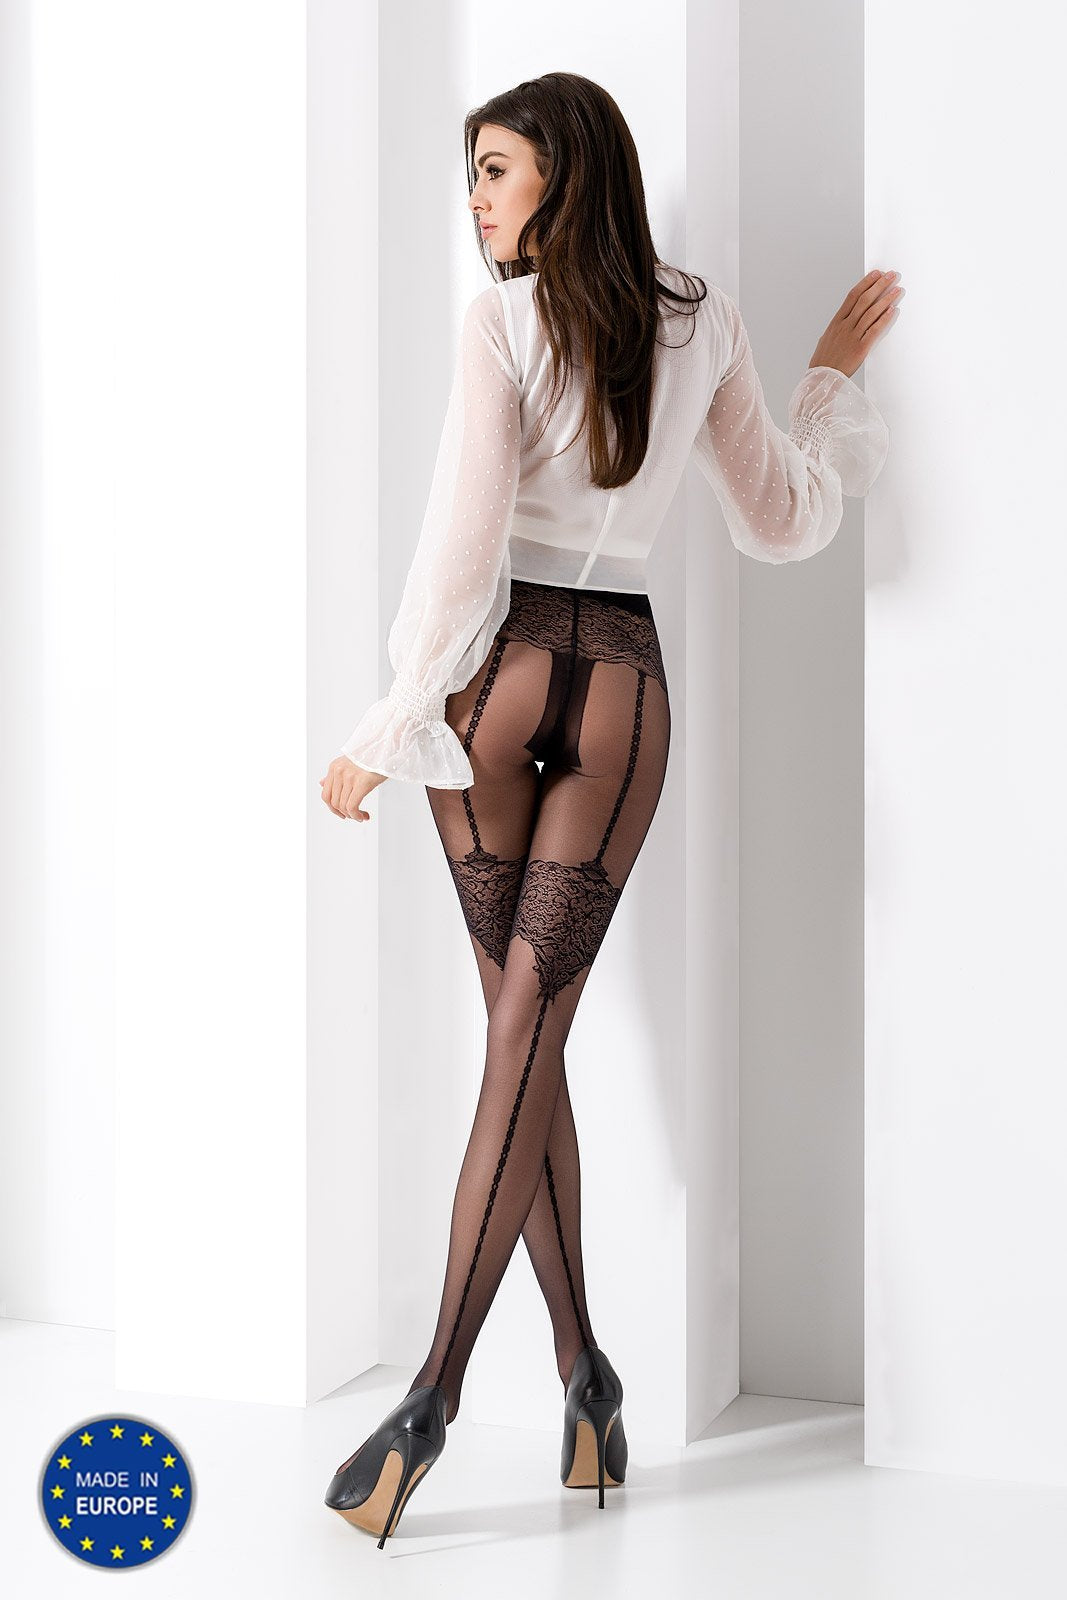 Passion TI031 Black Tights